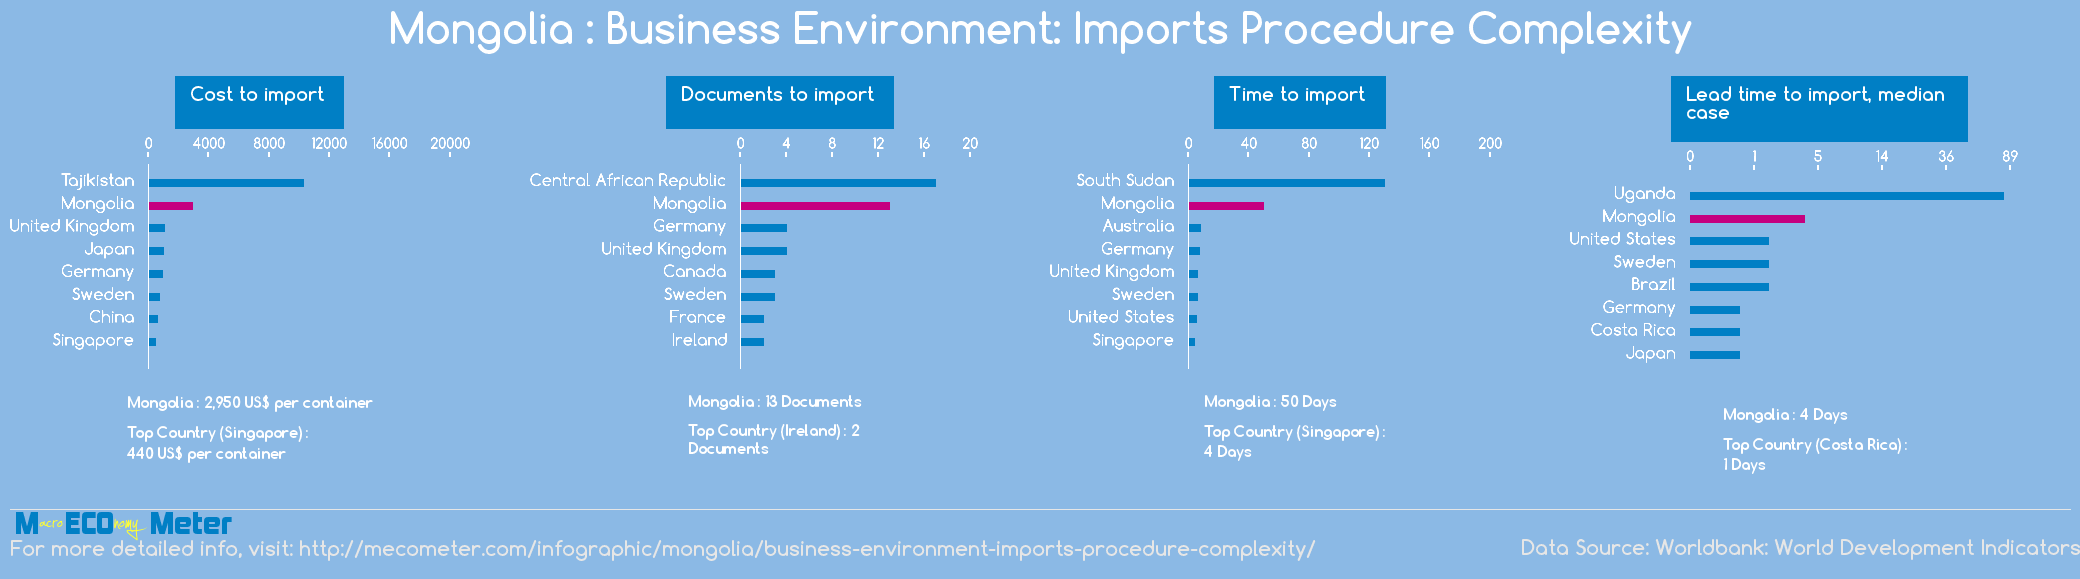 Mongolia : Business Environment: Imports Procedure Complexity